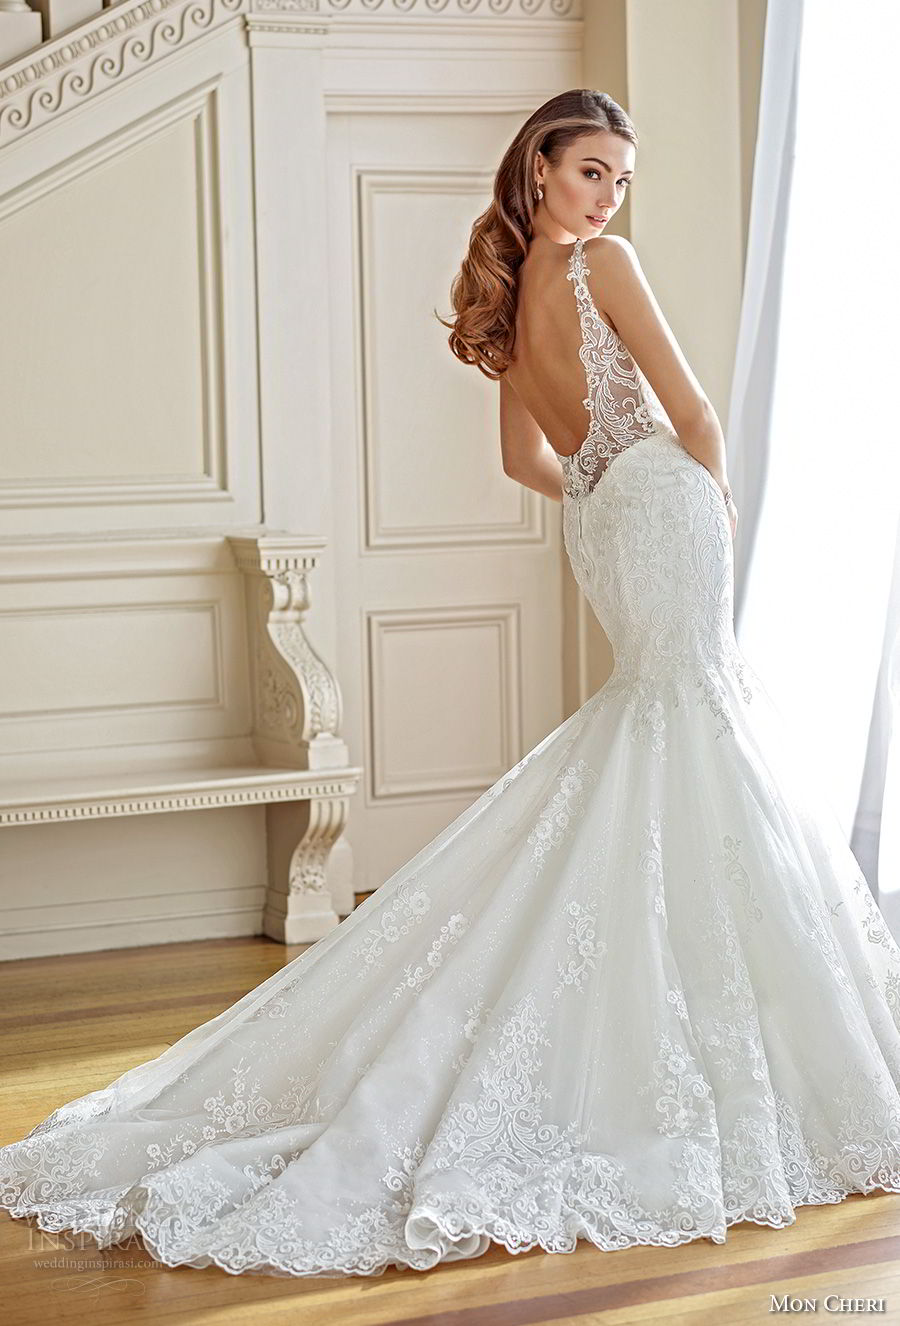 mon cheri fall 2017 bridal sleeveless embroidered strap plunging sweetheart neckline full embellishement elegant mermaid wedding dress open scoop back chapel train (213) bv